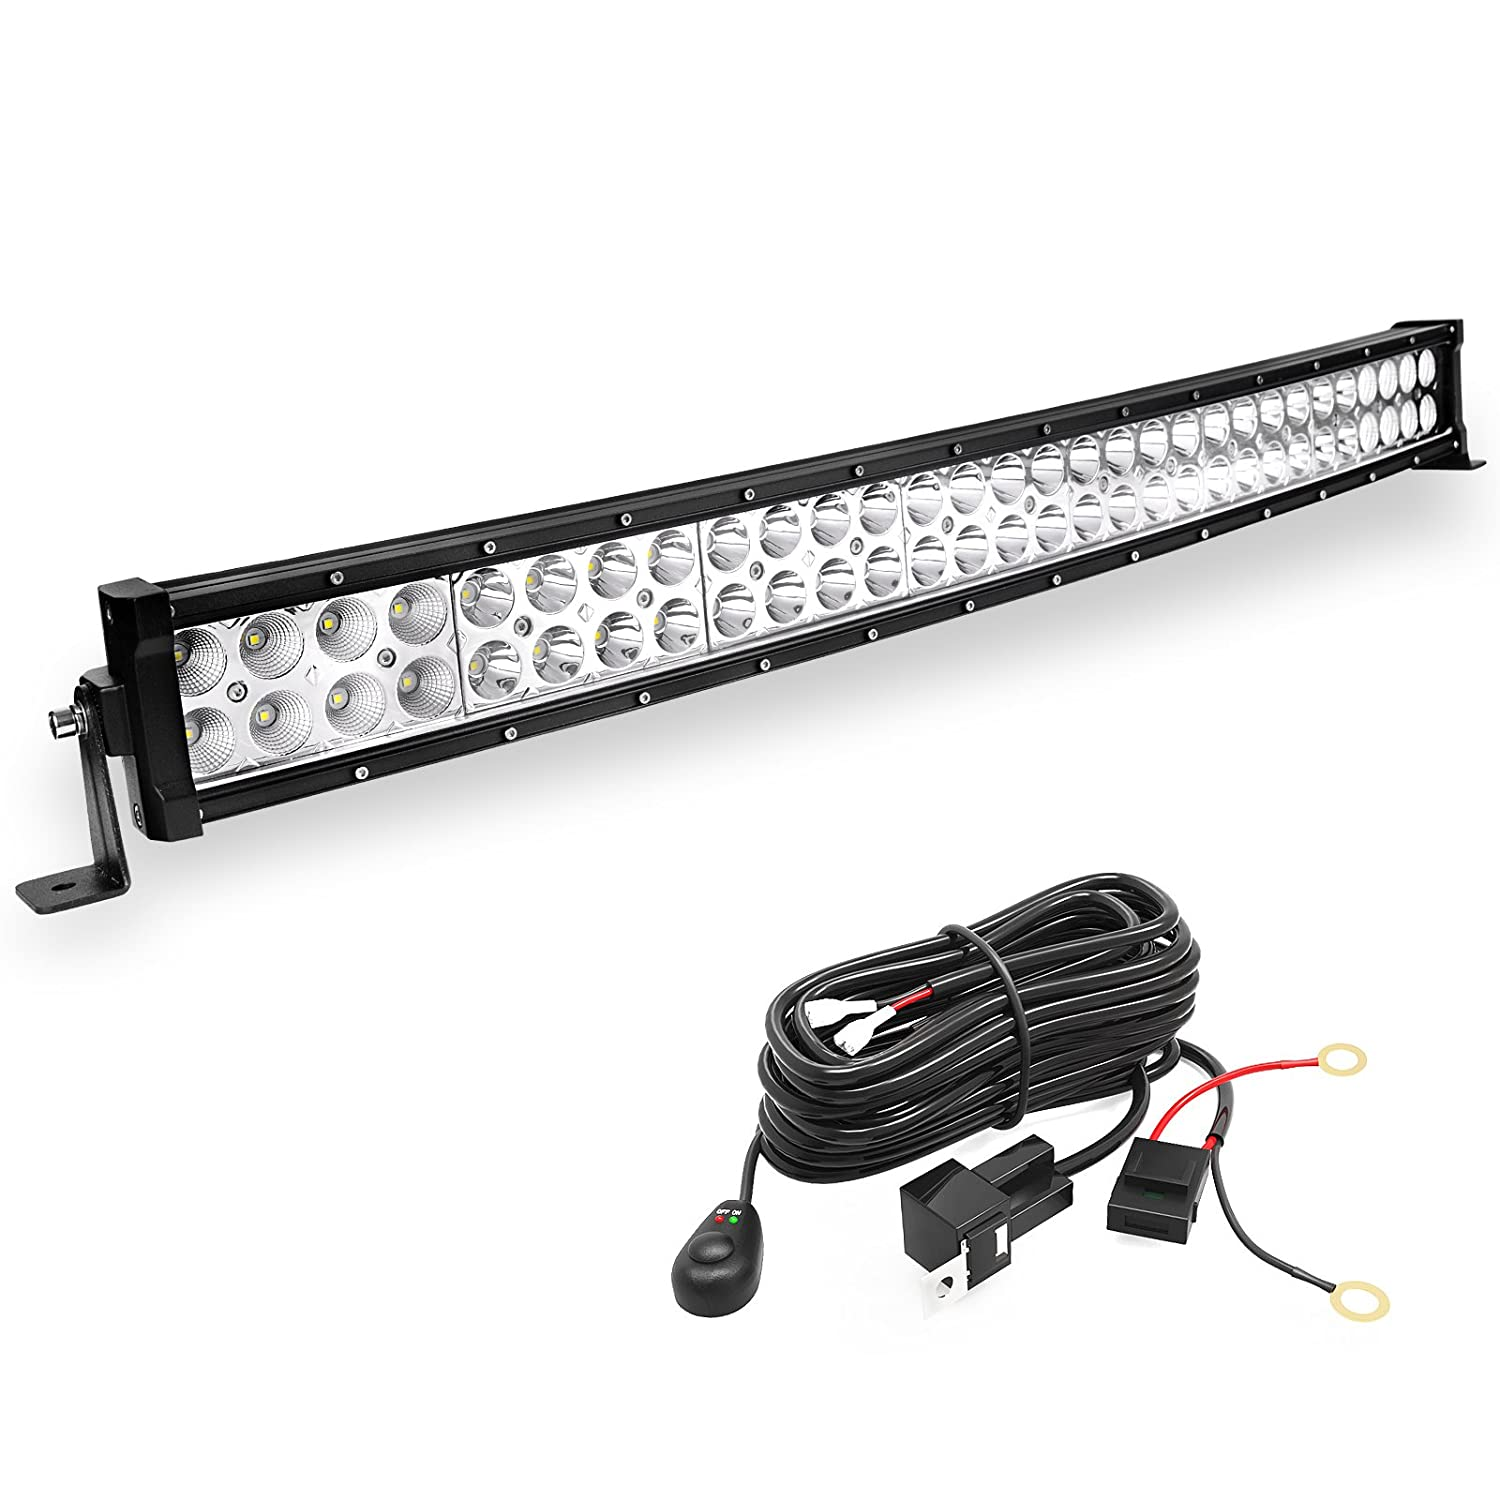 Yitamotor 42 Inch 400w Curved Led Light Bar Spot Flood Combo Offroad Off Road Lights Wiring Harness With 12v